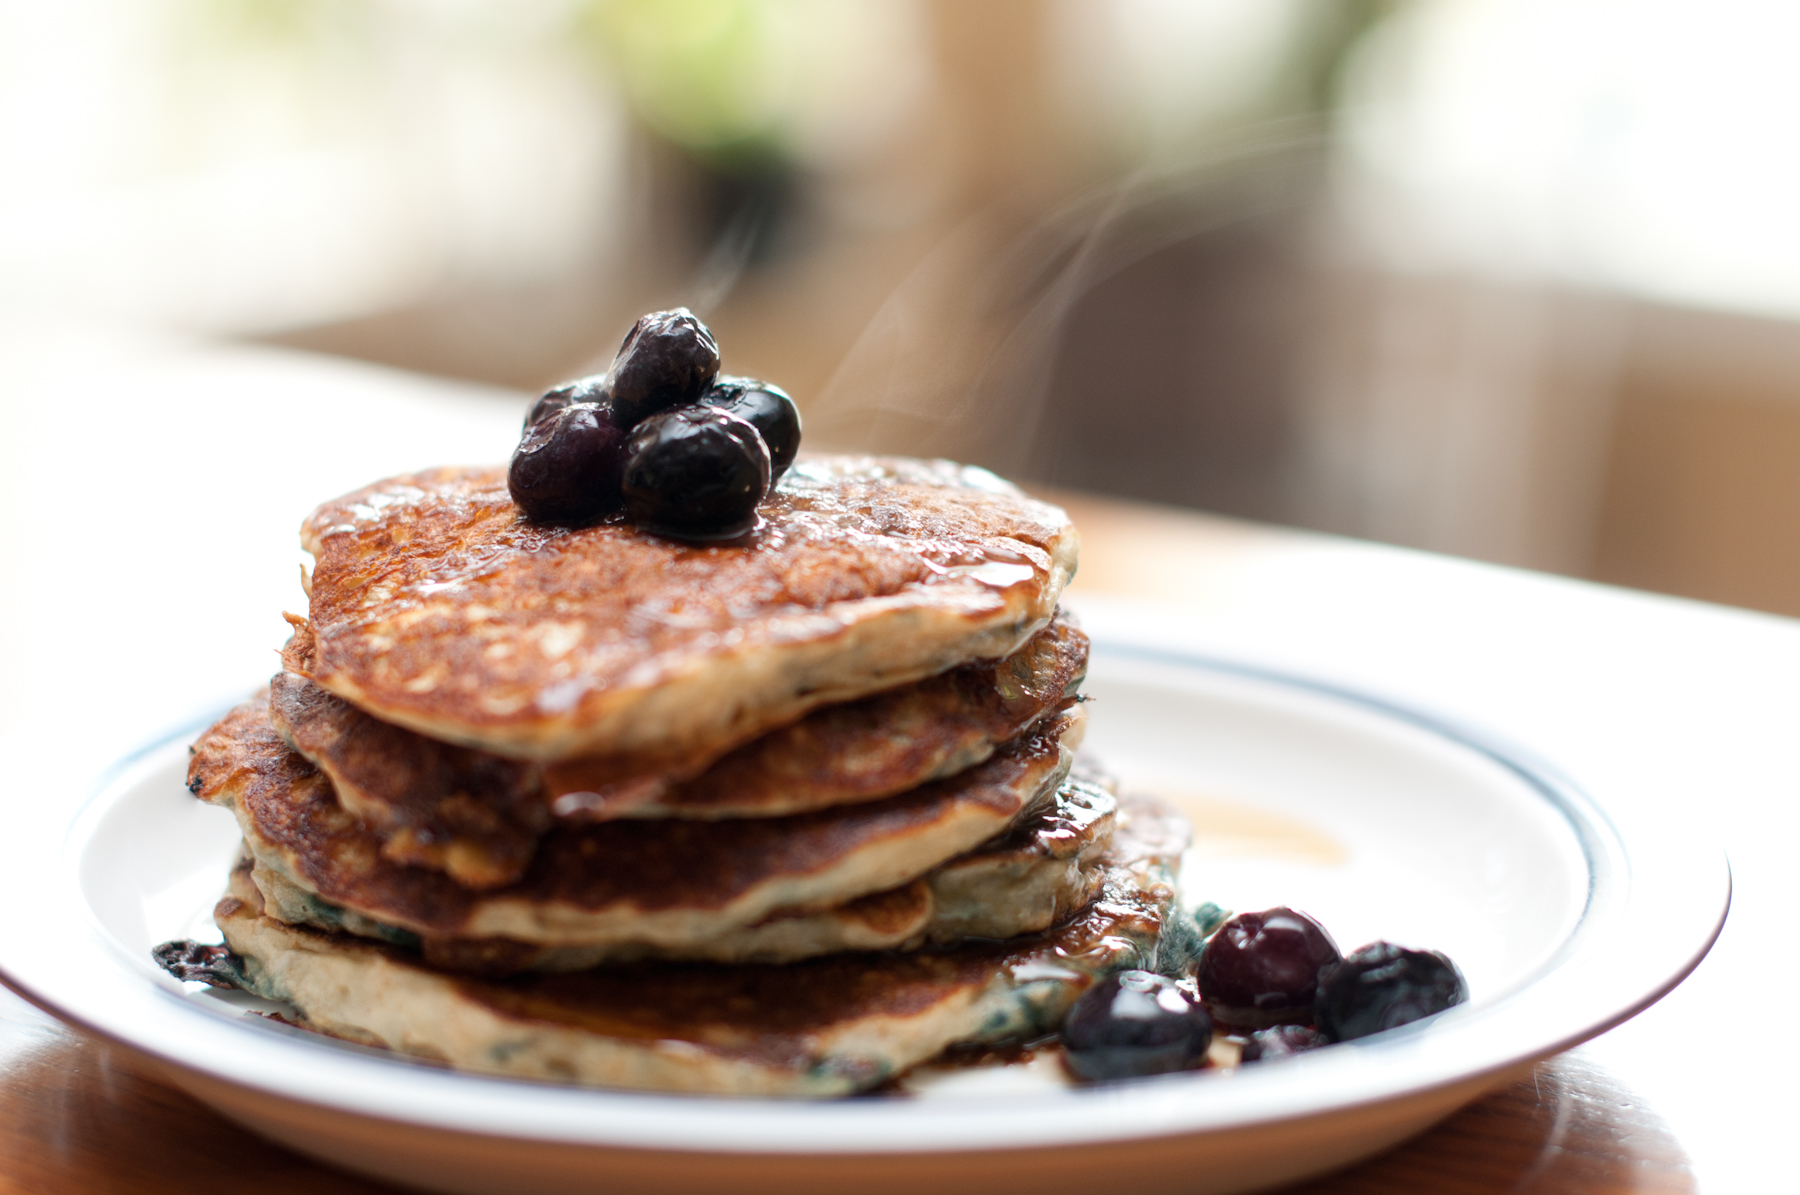 Recipes Course Breakfast Pancakes Blueberry Oatmeal Pancakes